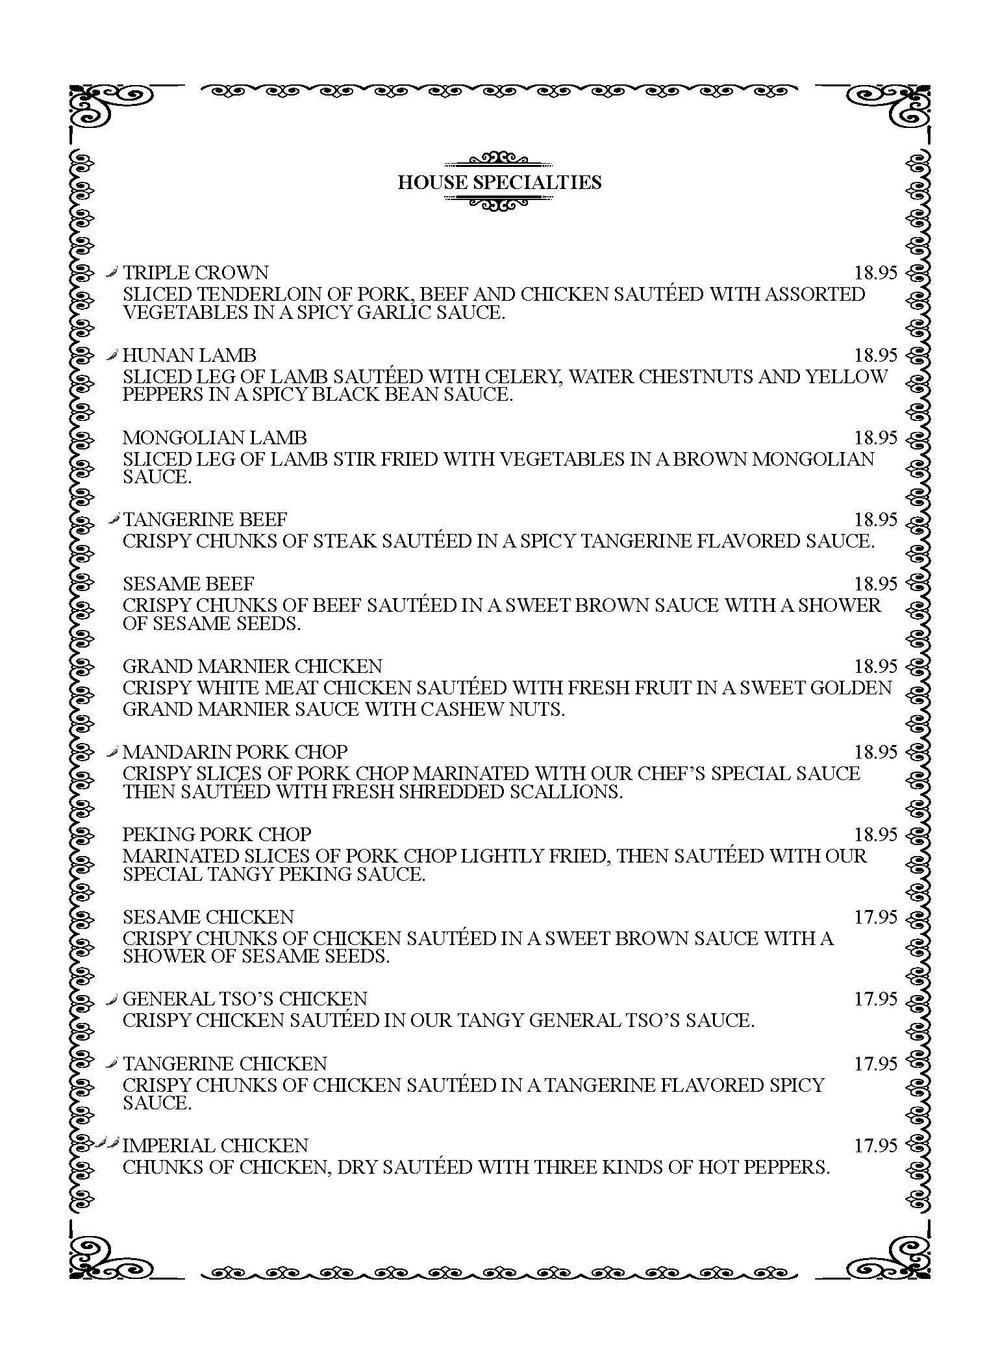 NOBLE EAST DINE IN MENU FOR AMY WEBSITE_Page_10.jpg